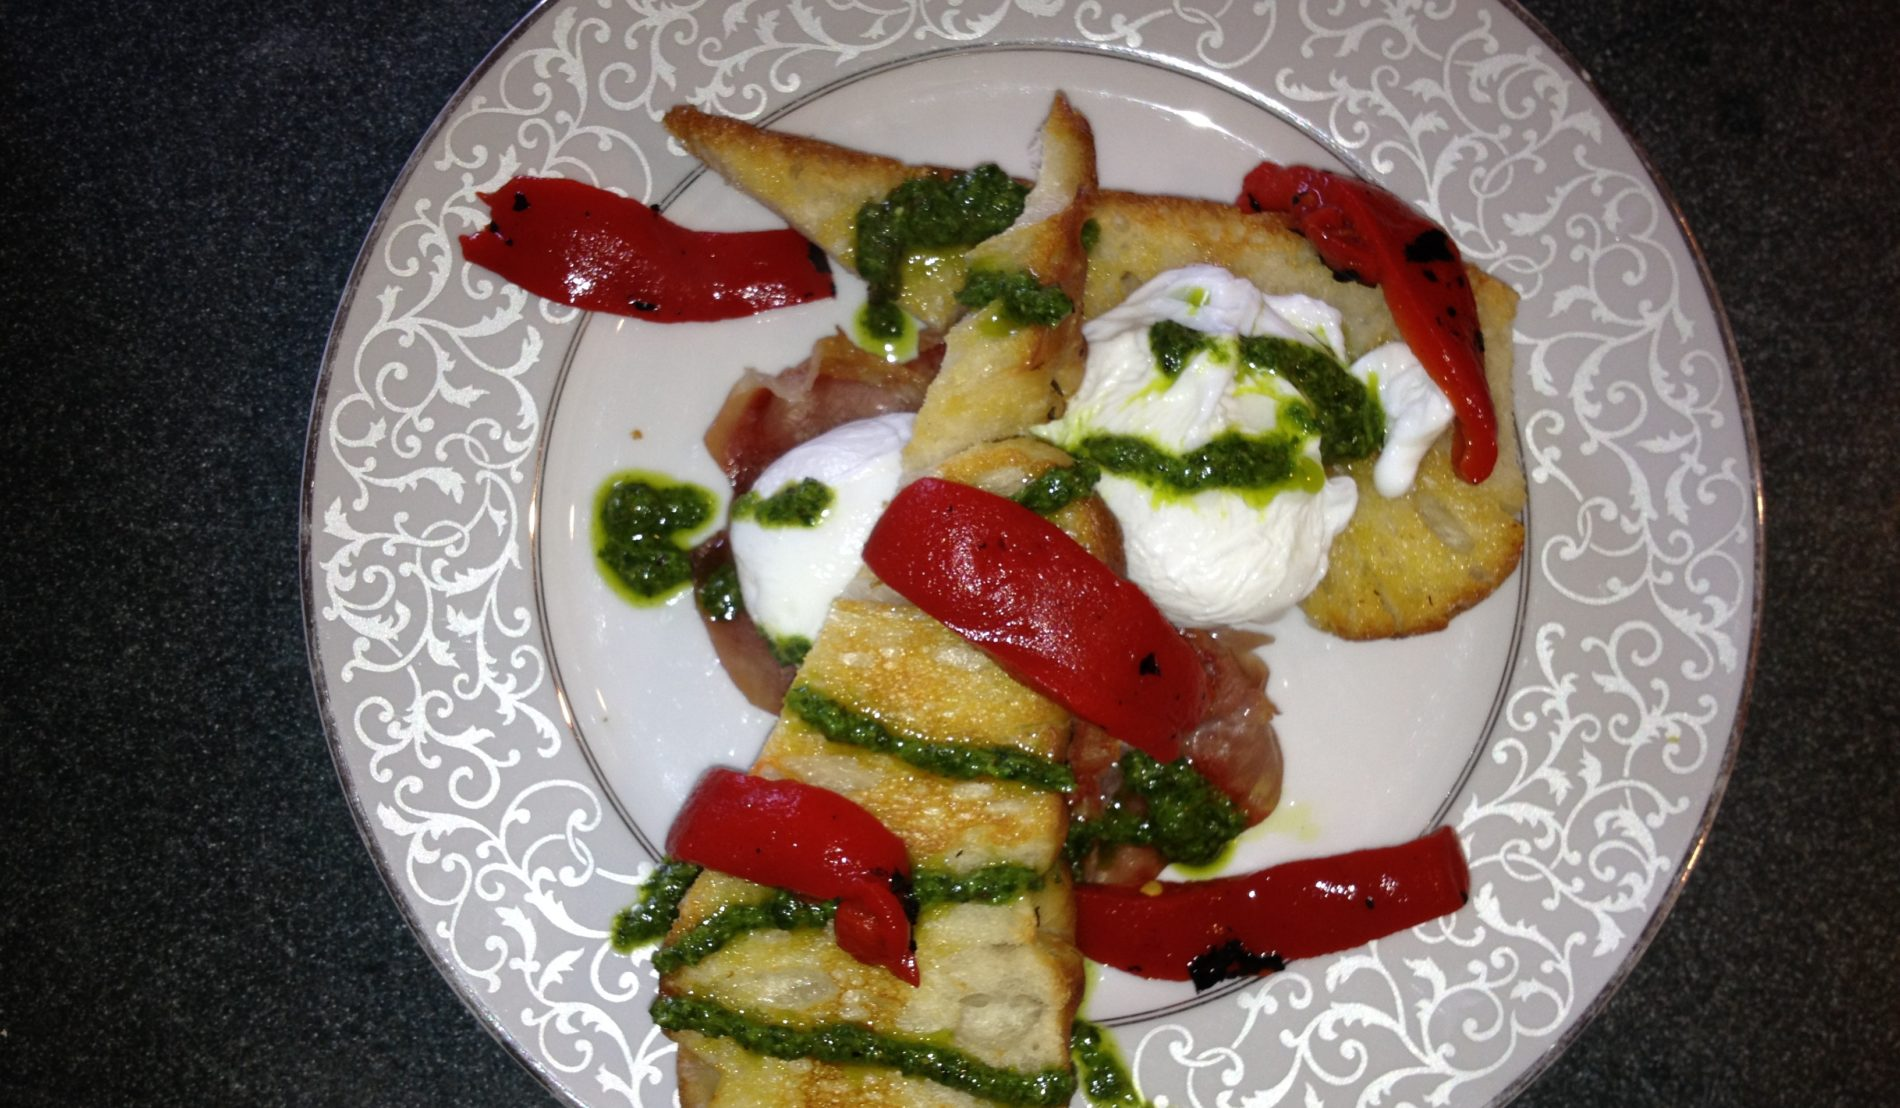 White scrolled plate topped with two slices of eggs Italiano, with red peppers, green sauce and sour cream